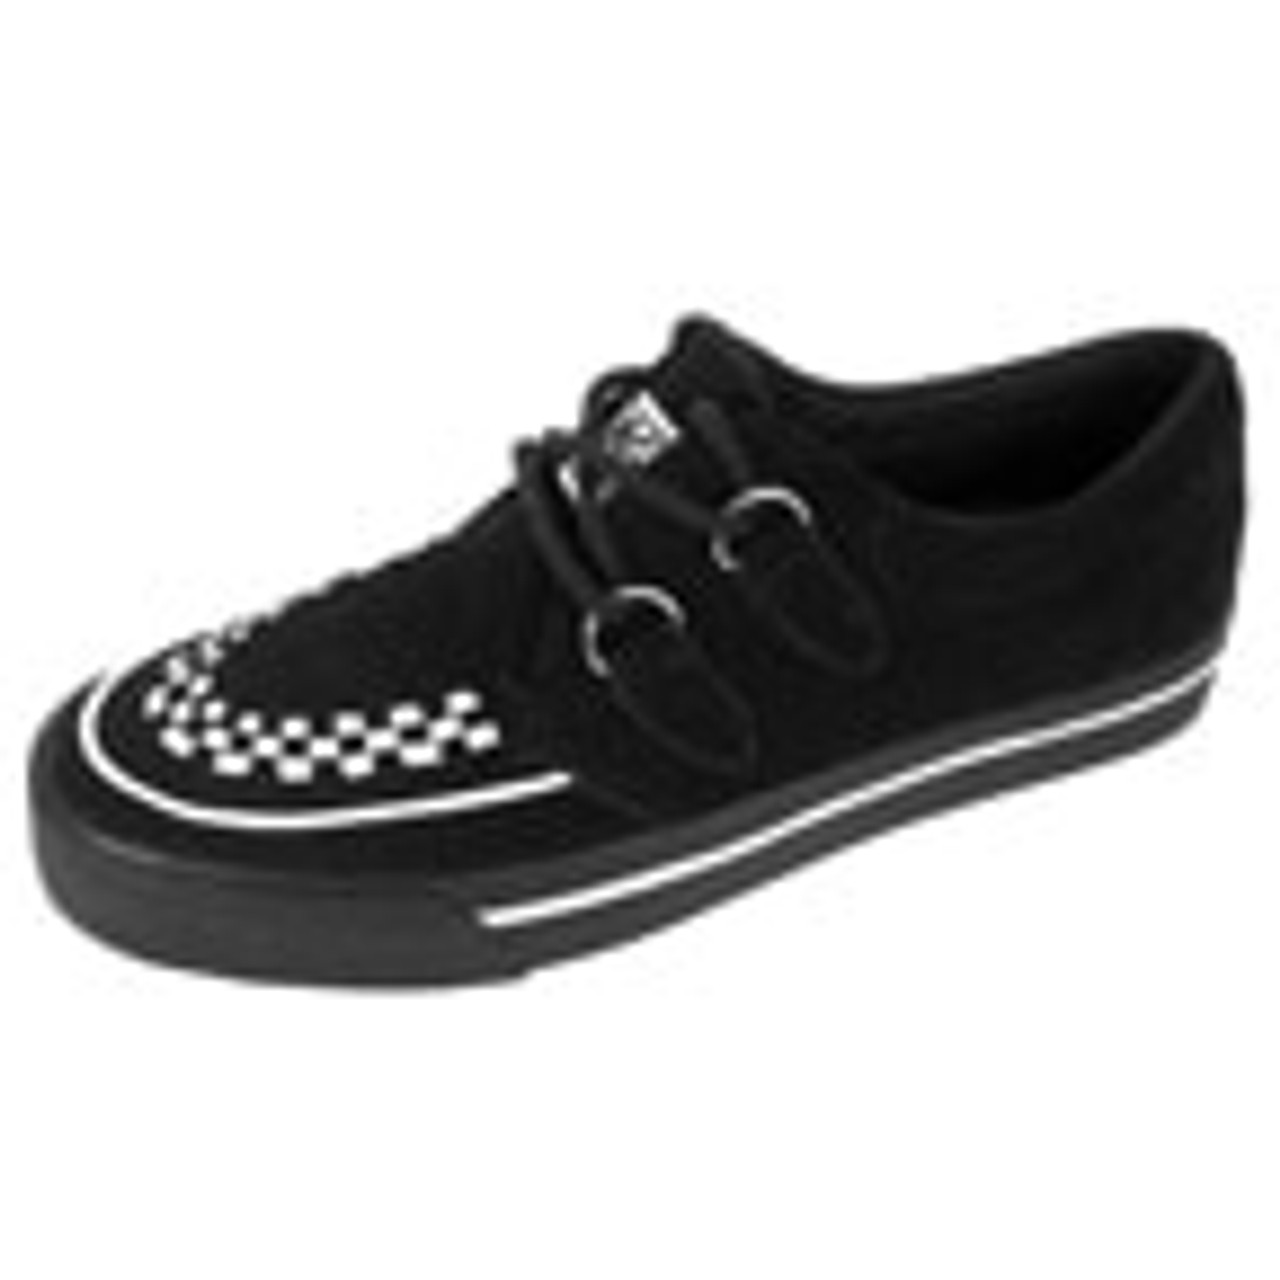 Black Suede with White Interlace Creeper Sneaker- A6293